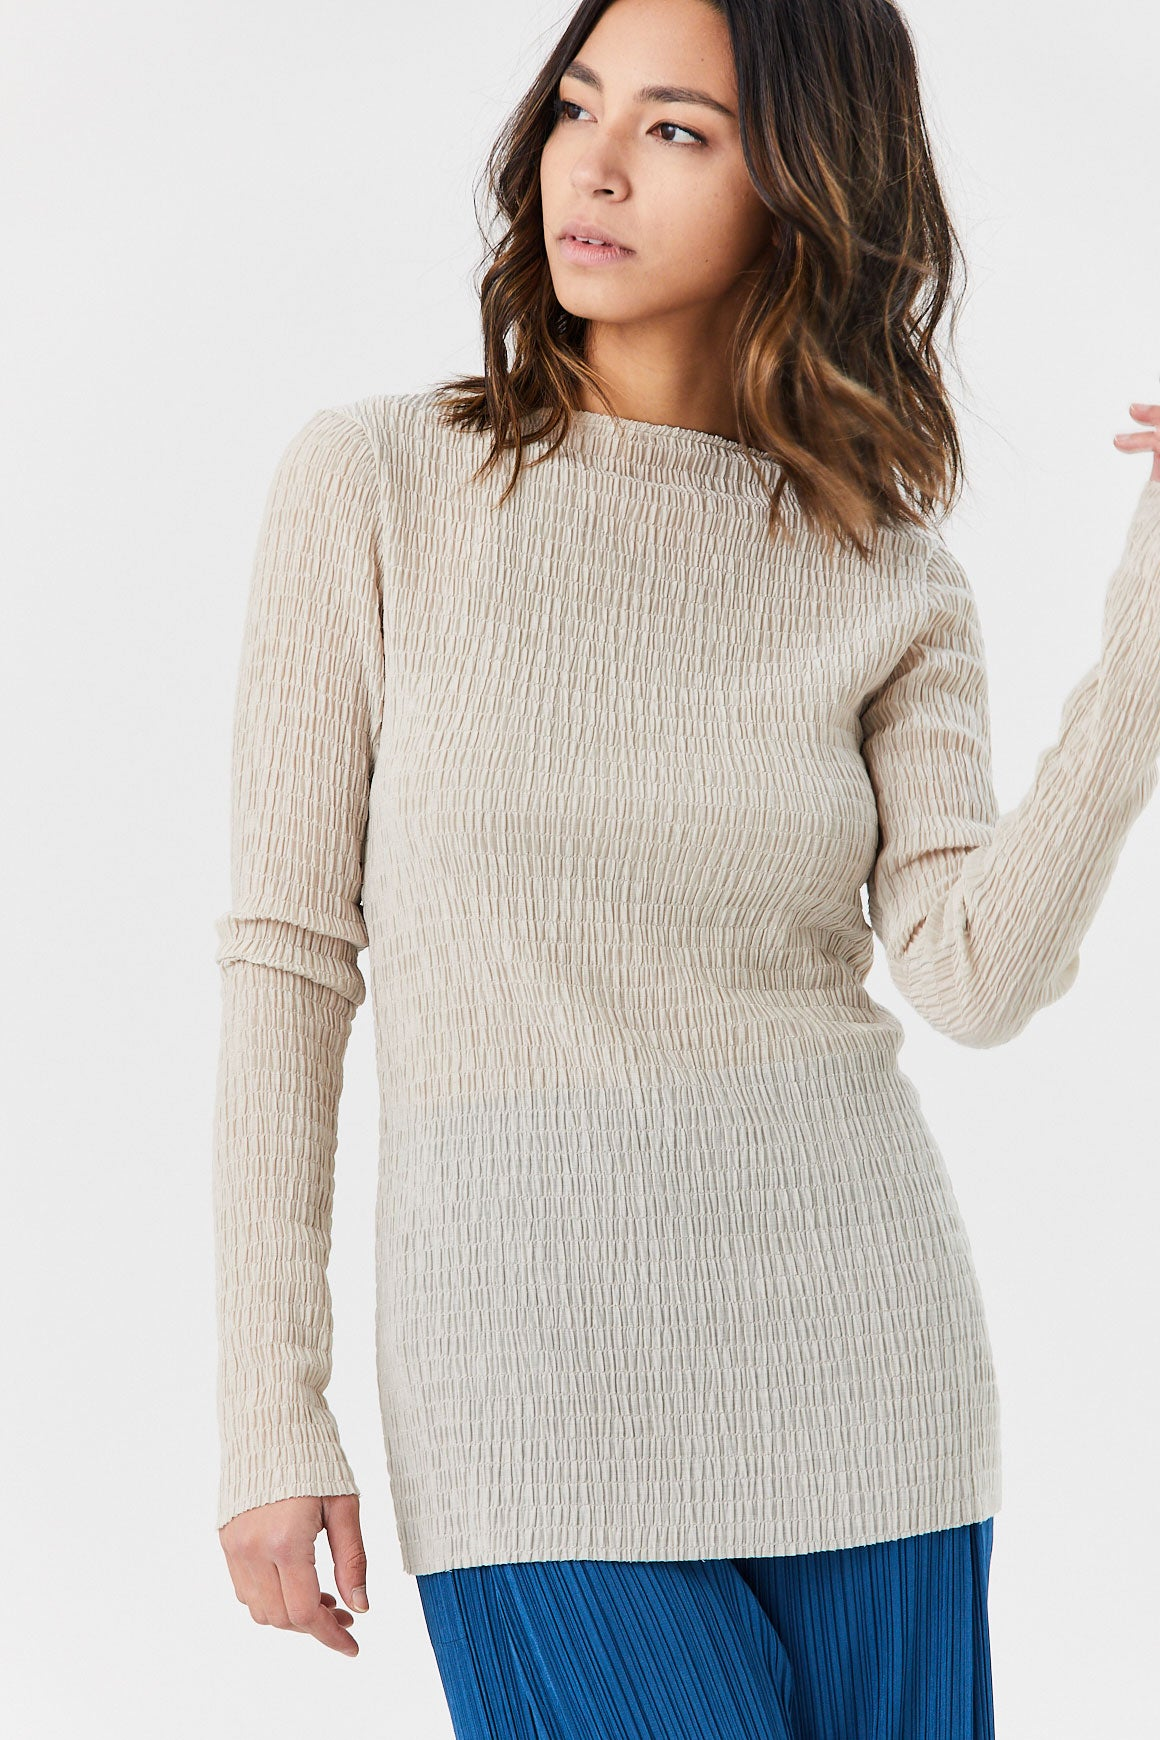 Nomia - Long Sleeve Knit Top, Wheat